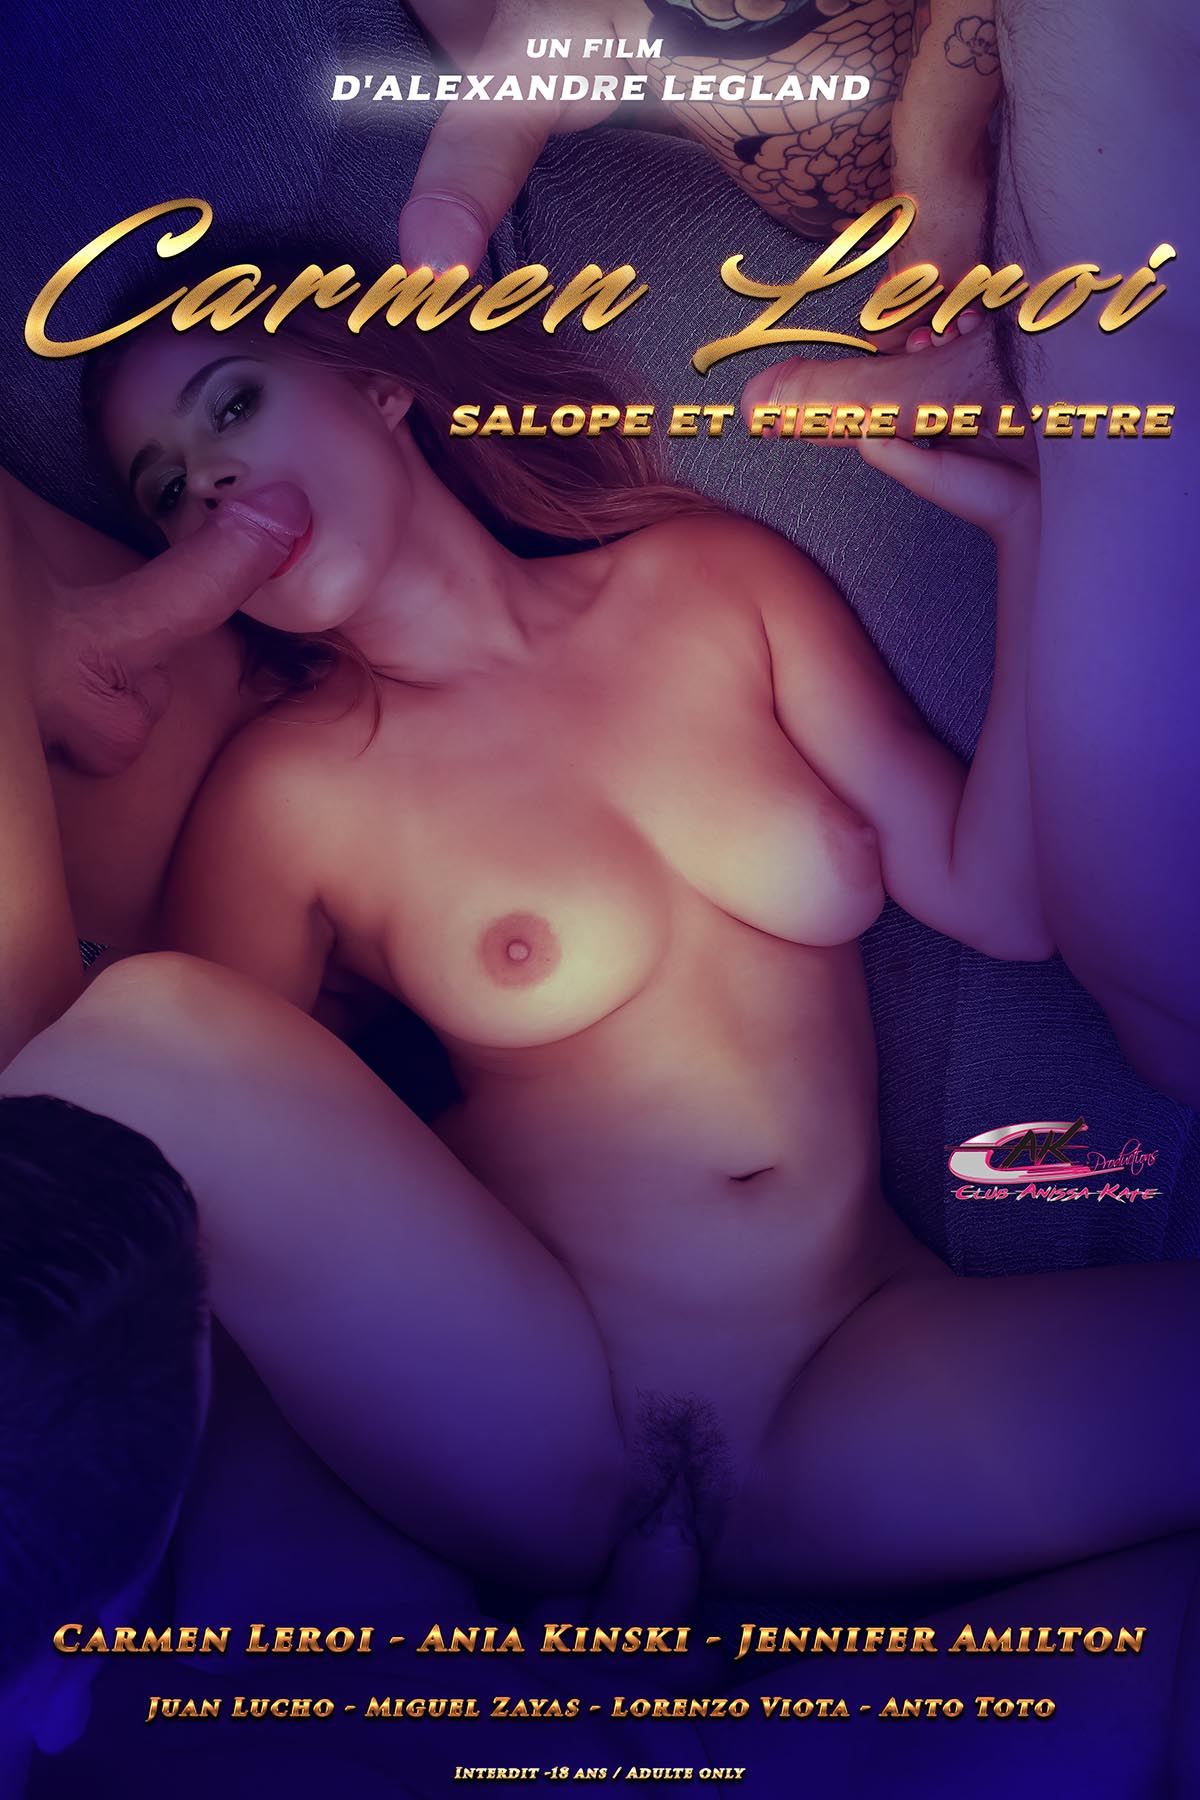 Carmen Leroi, a true slut, and proud of it!